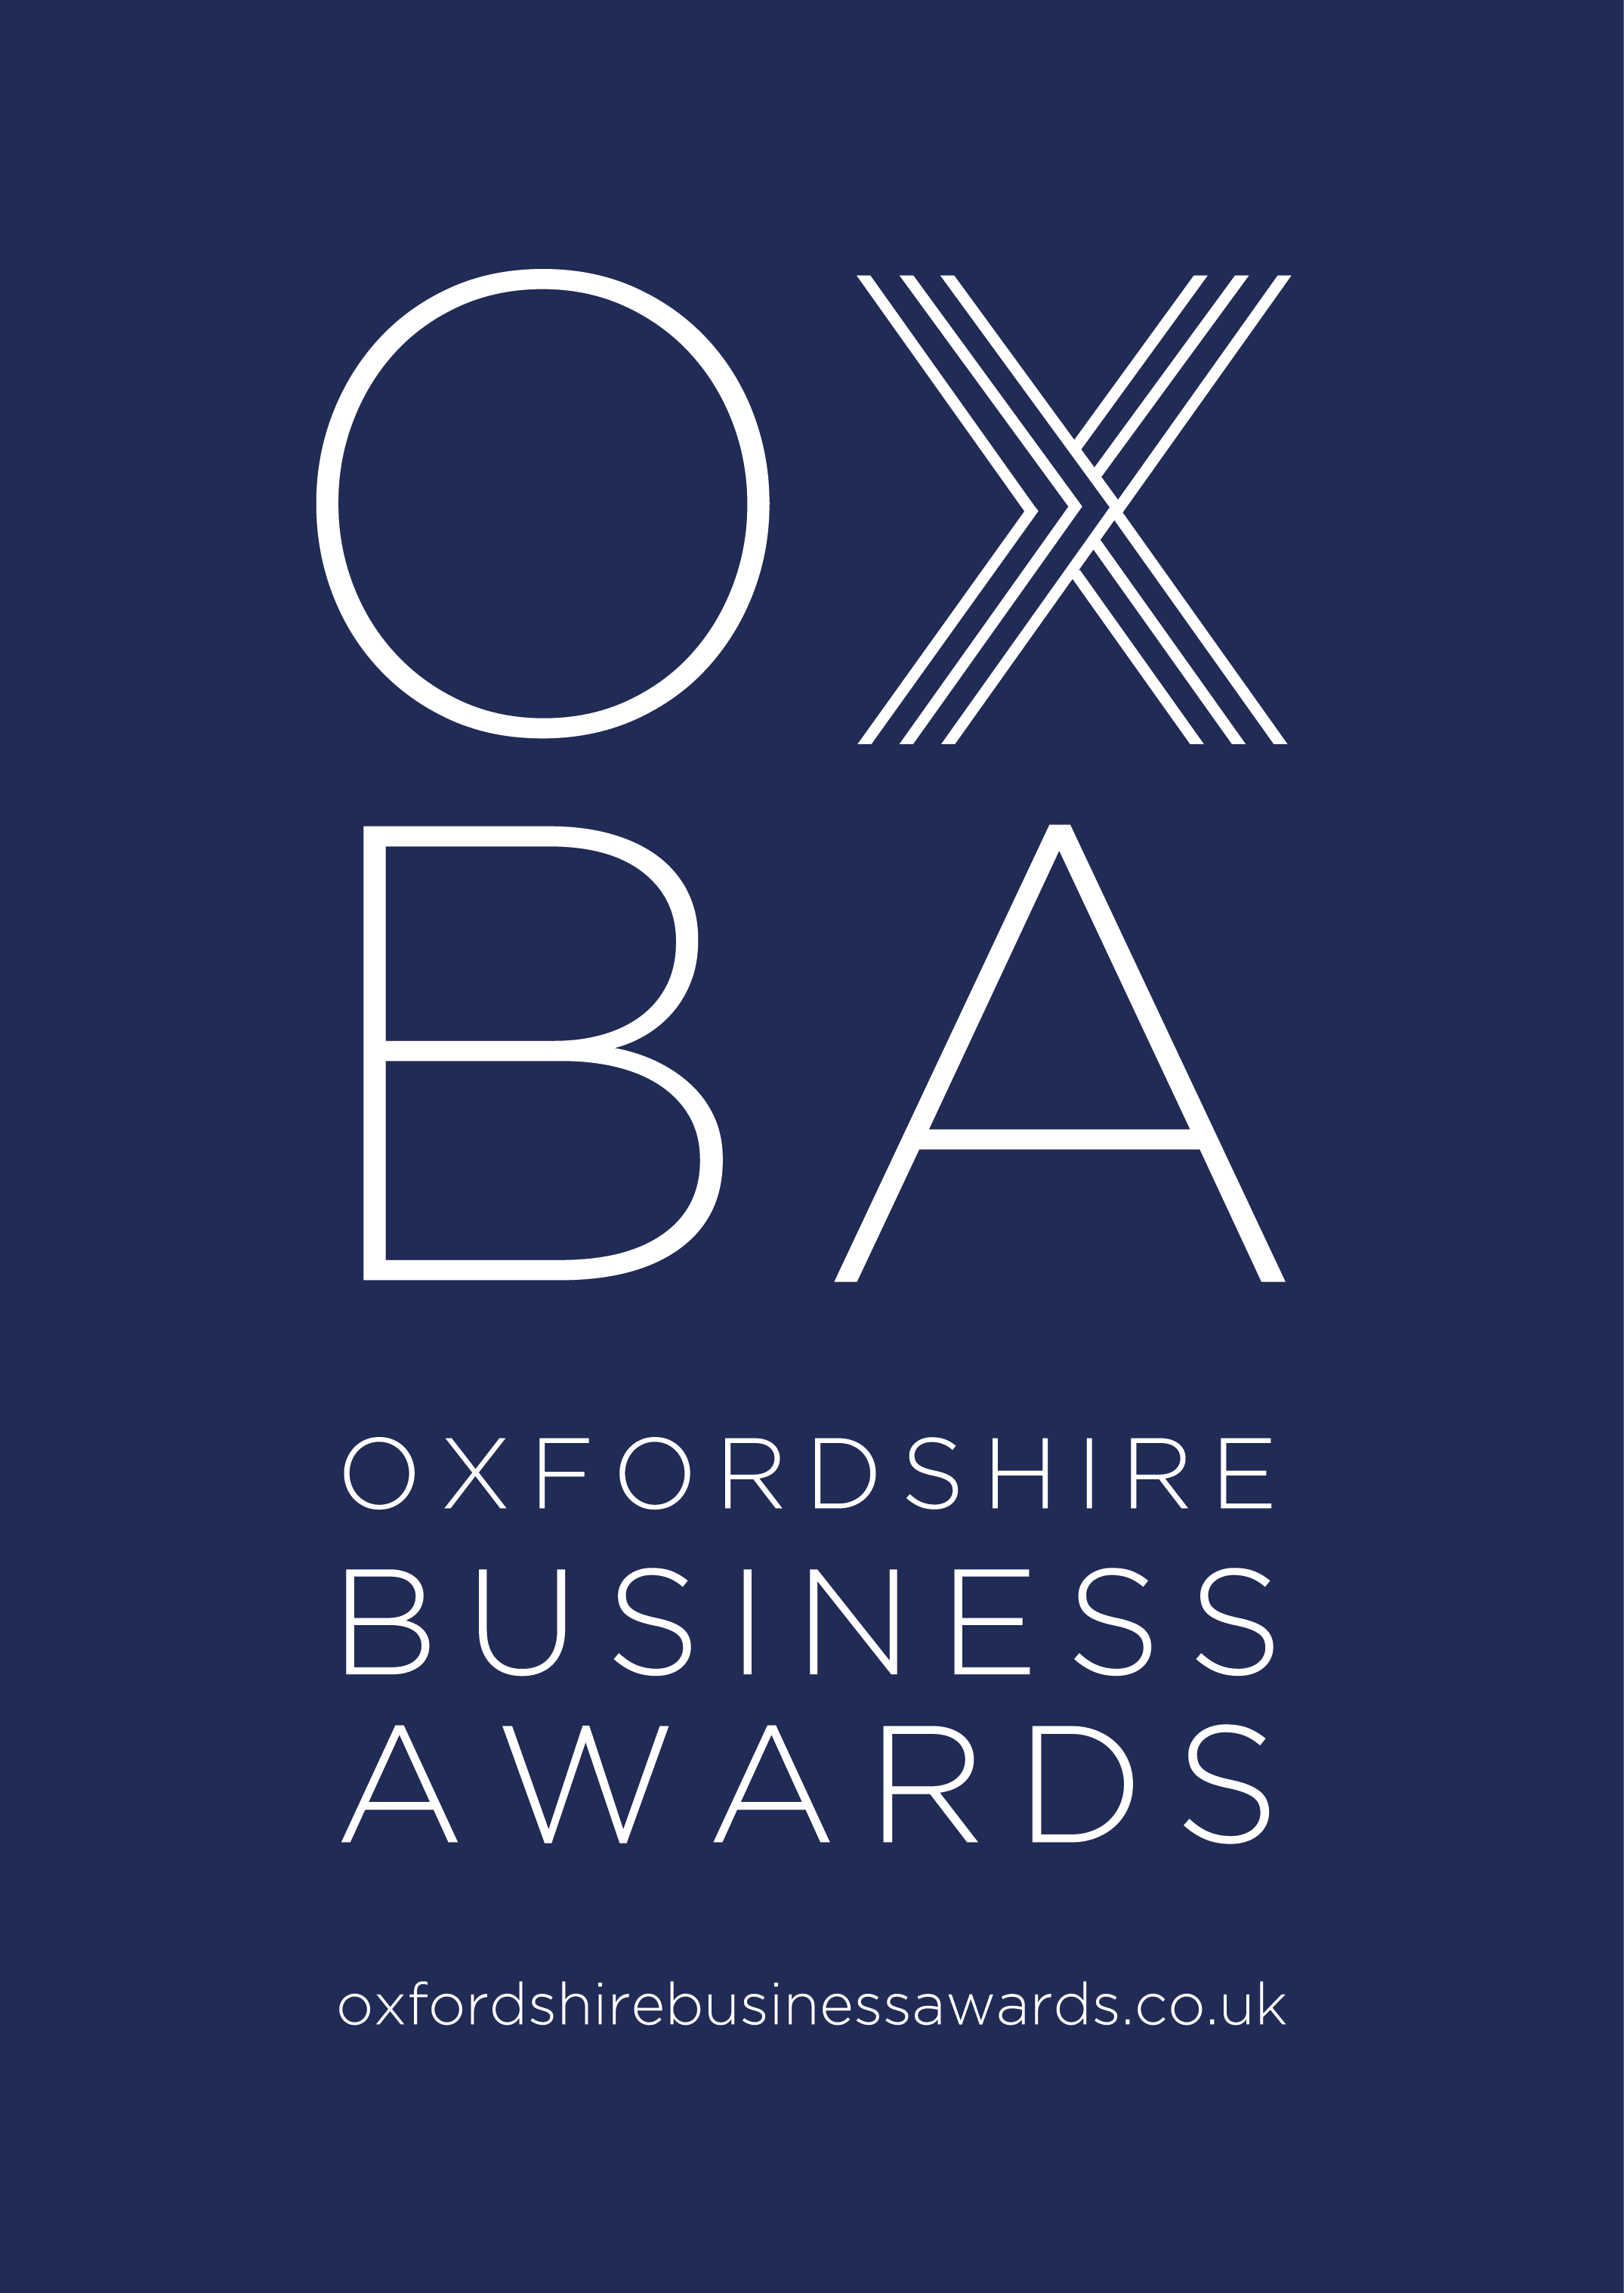 Oxfordshire Business Awards - Small Business of the Year: WinnerYoung Business Person of the Year: Finalist (Toby Crawford, CTO)